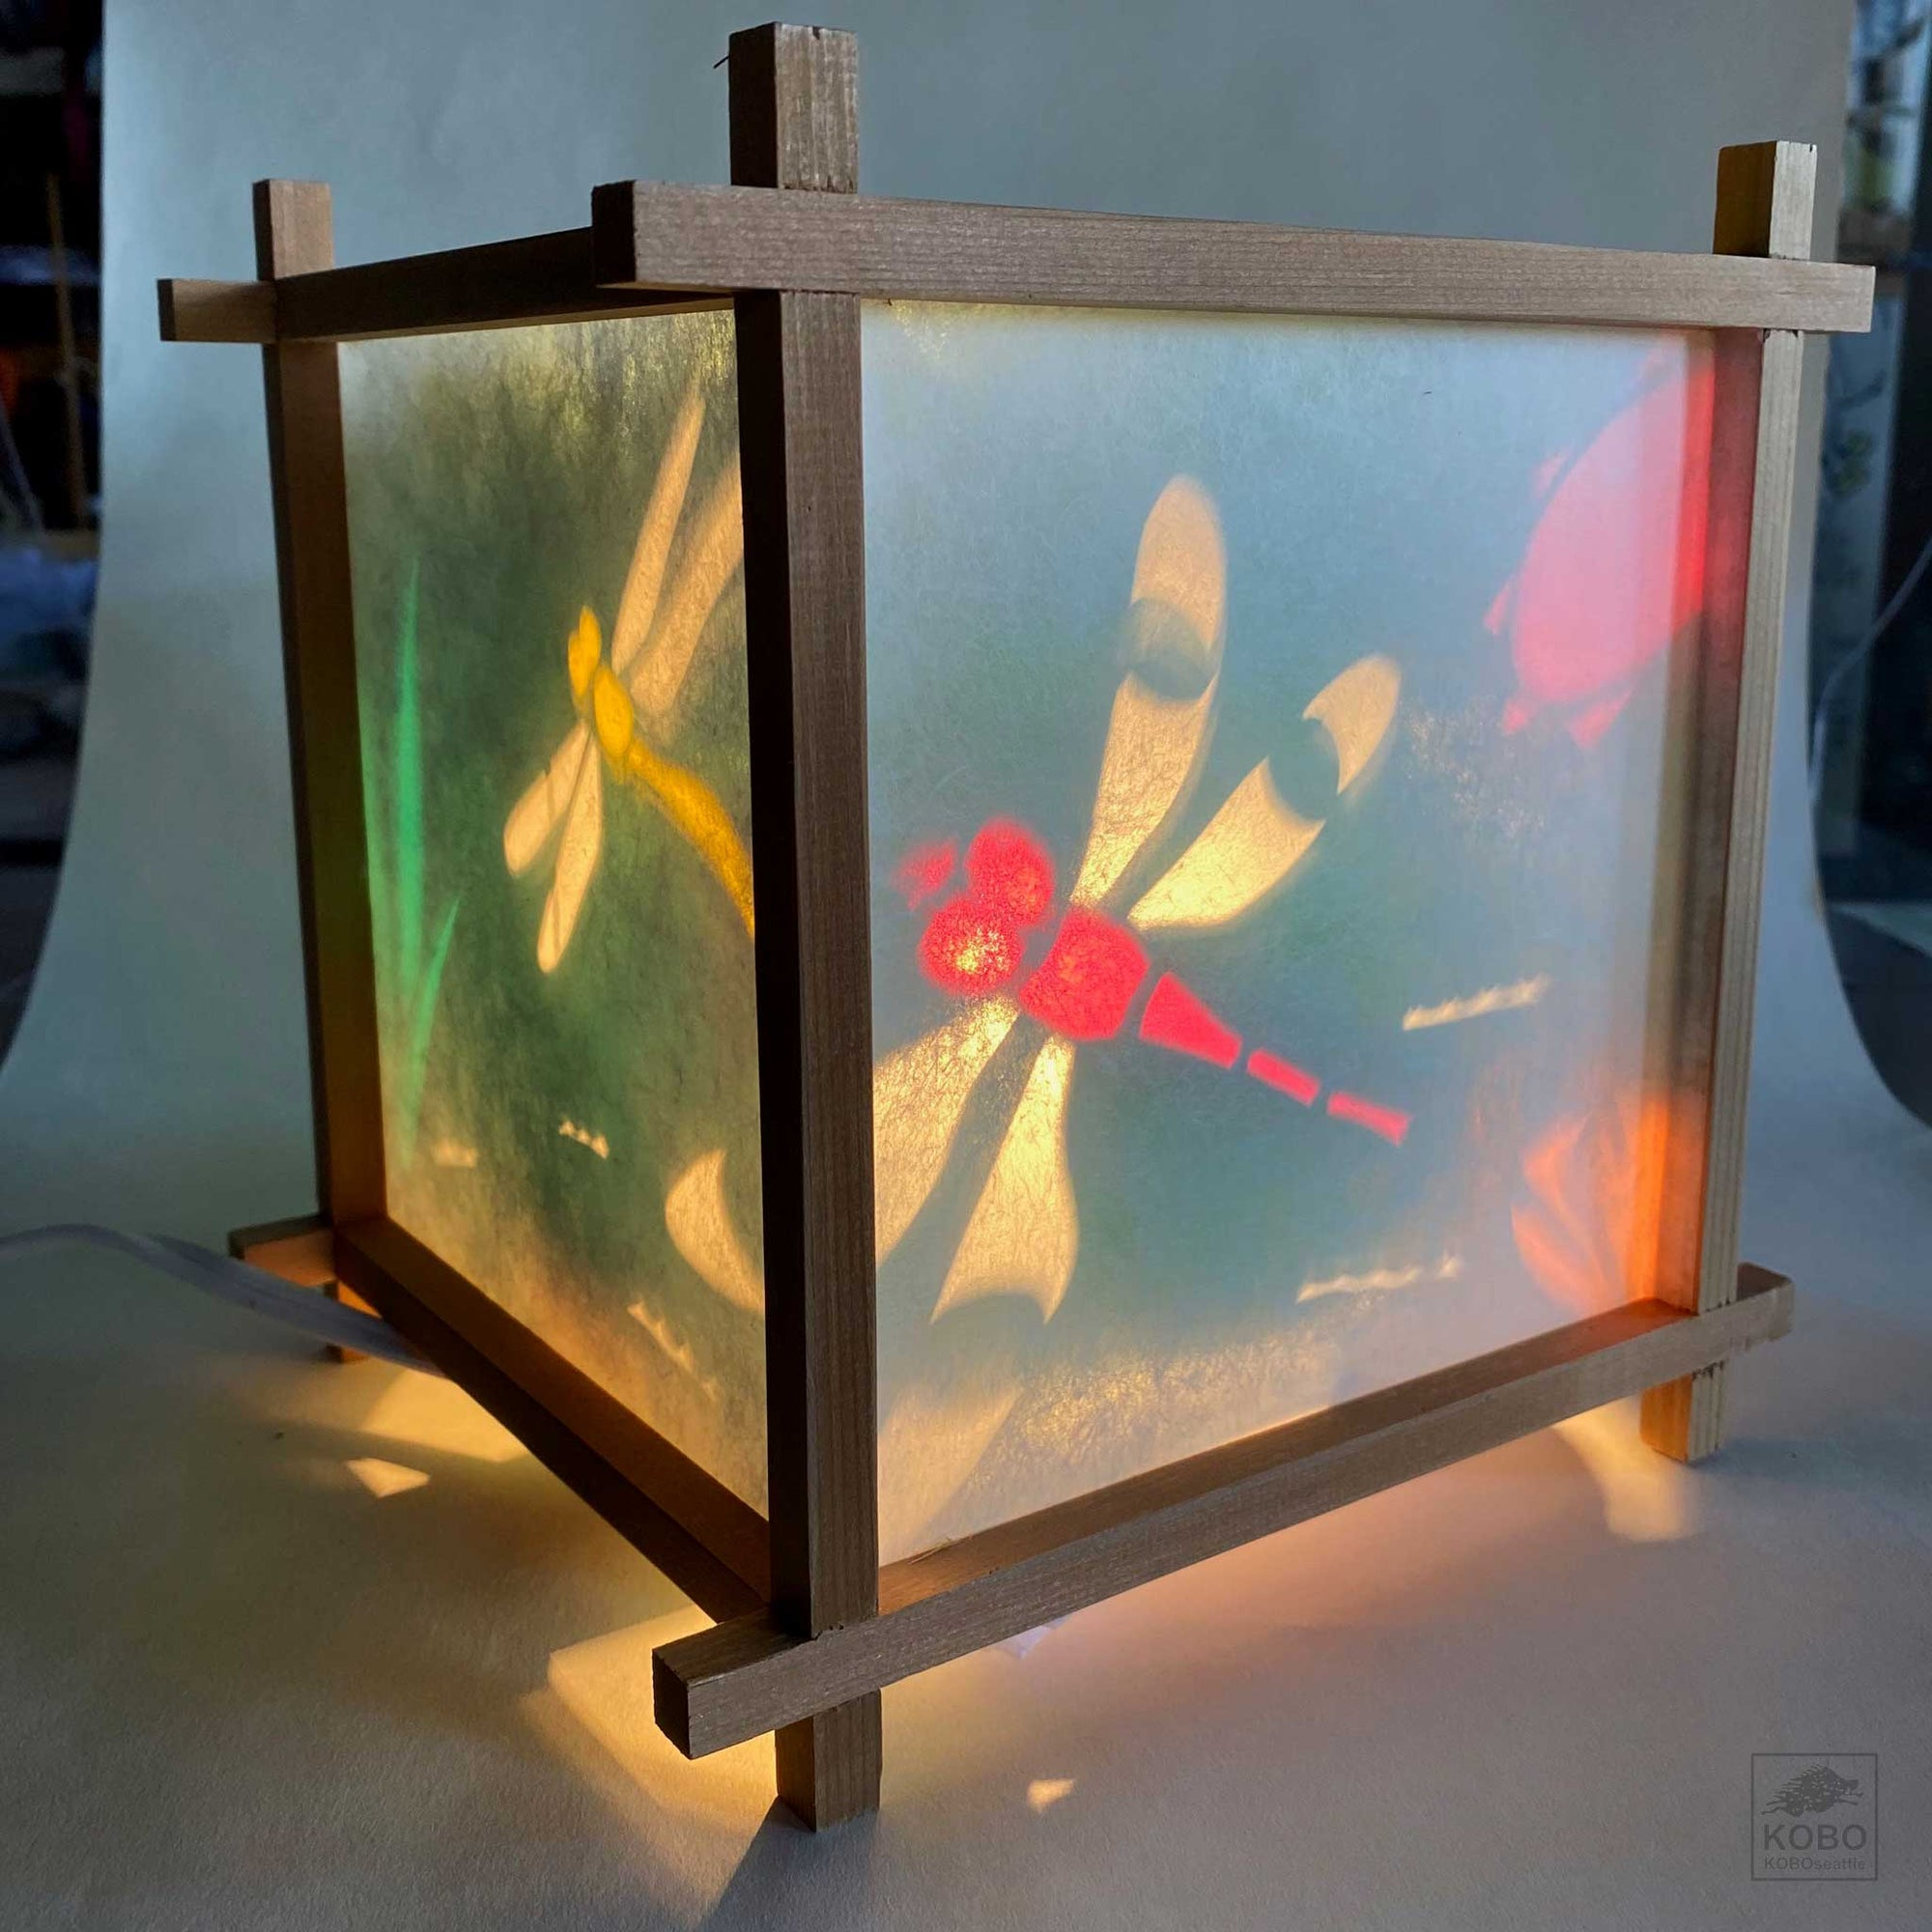 Japanese Turning Lantern - Dragonflies